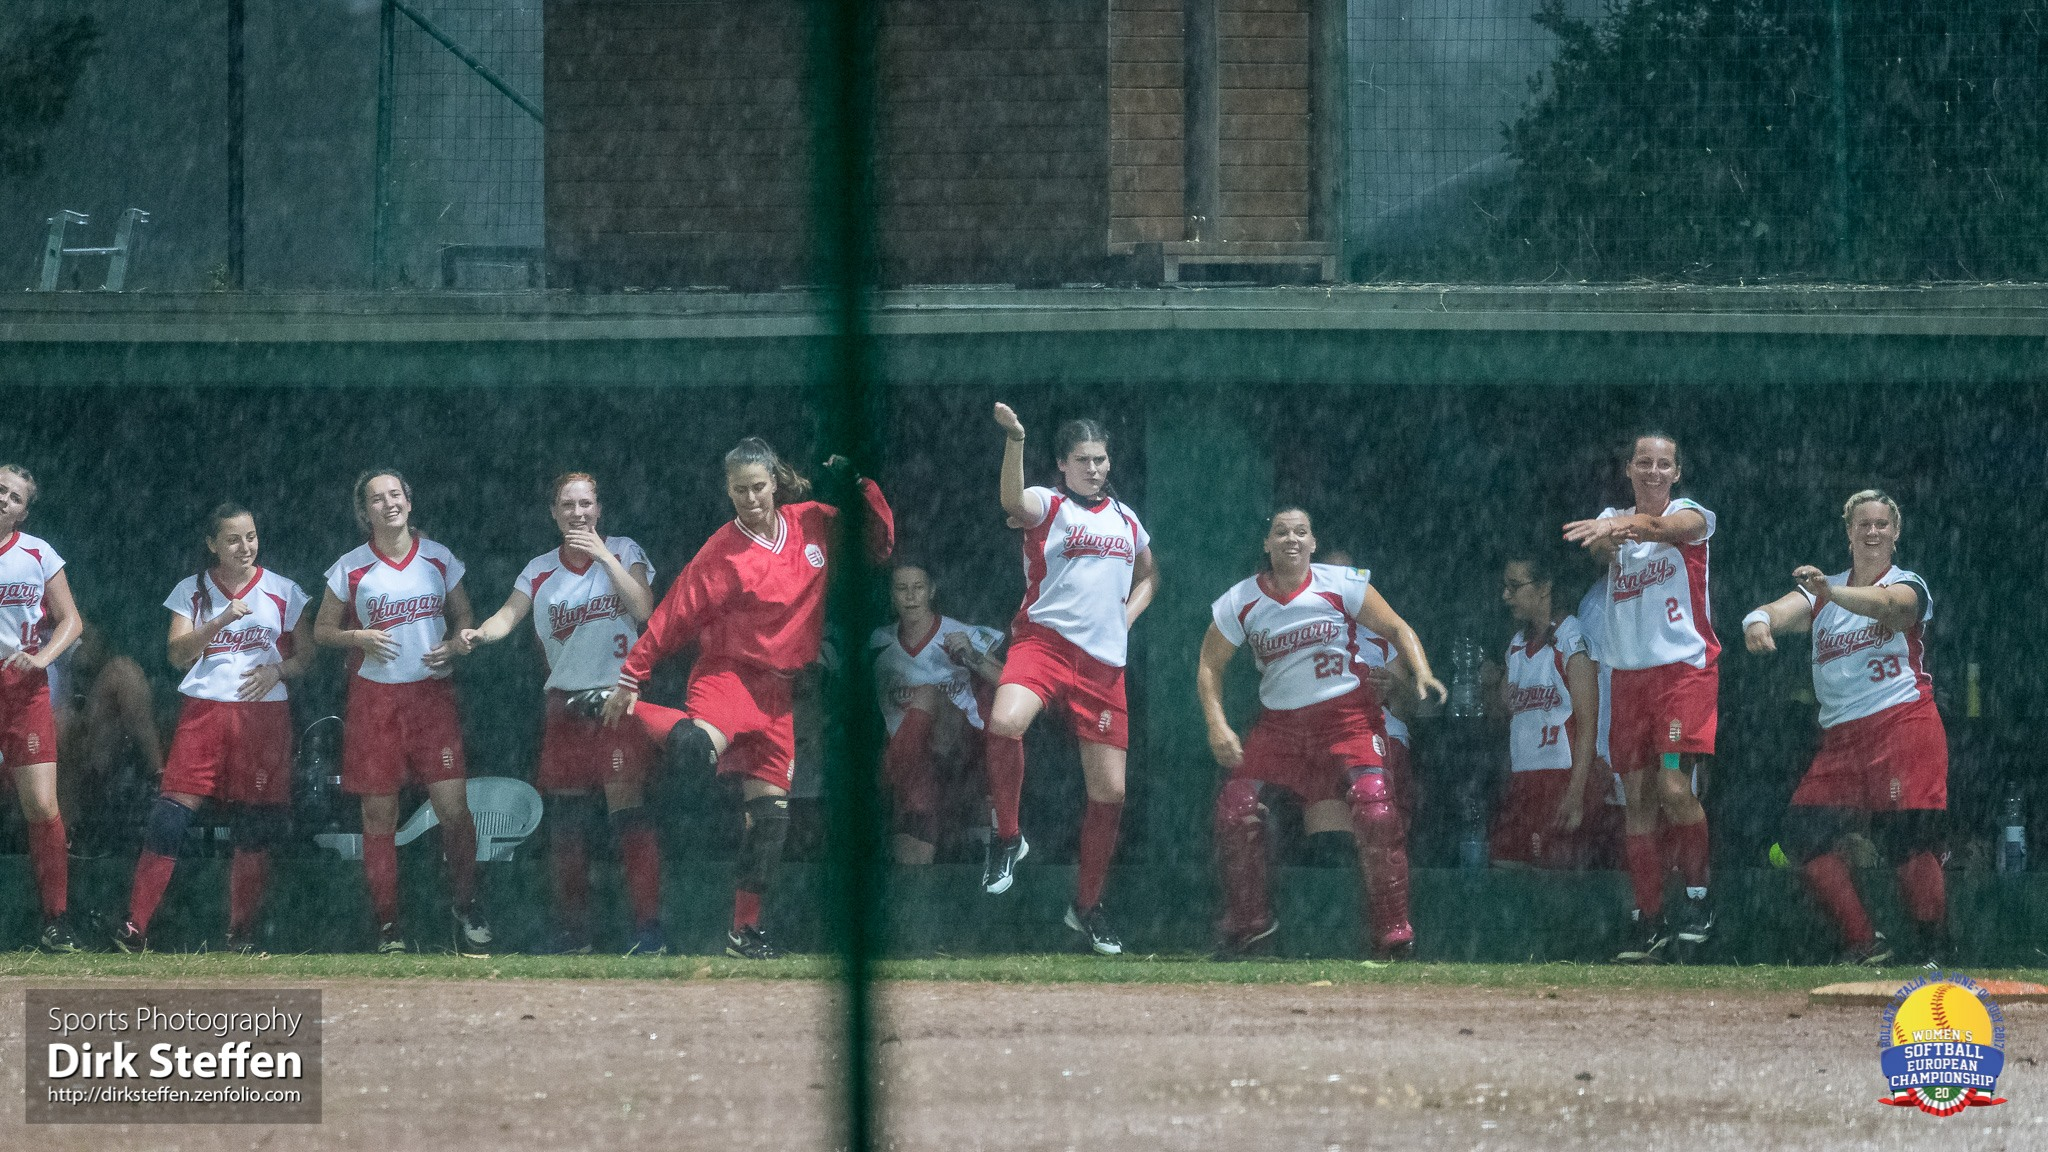 Hungary dances to stay warm during summer shower... or was it the dancing that brought the rain?